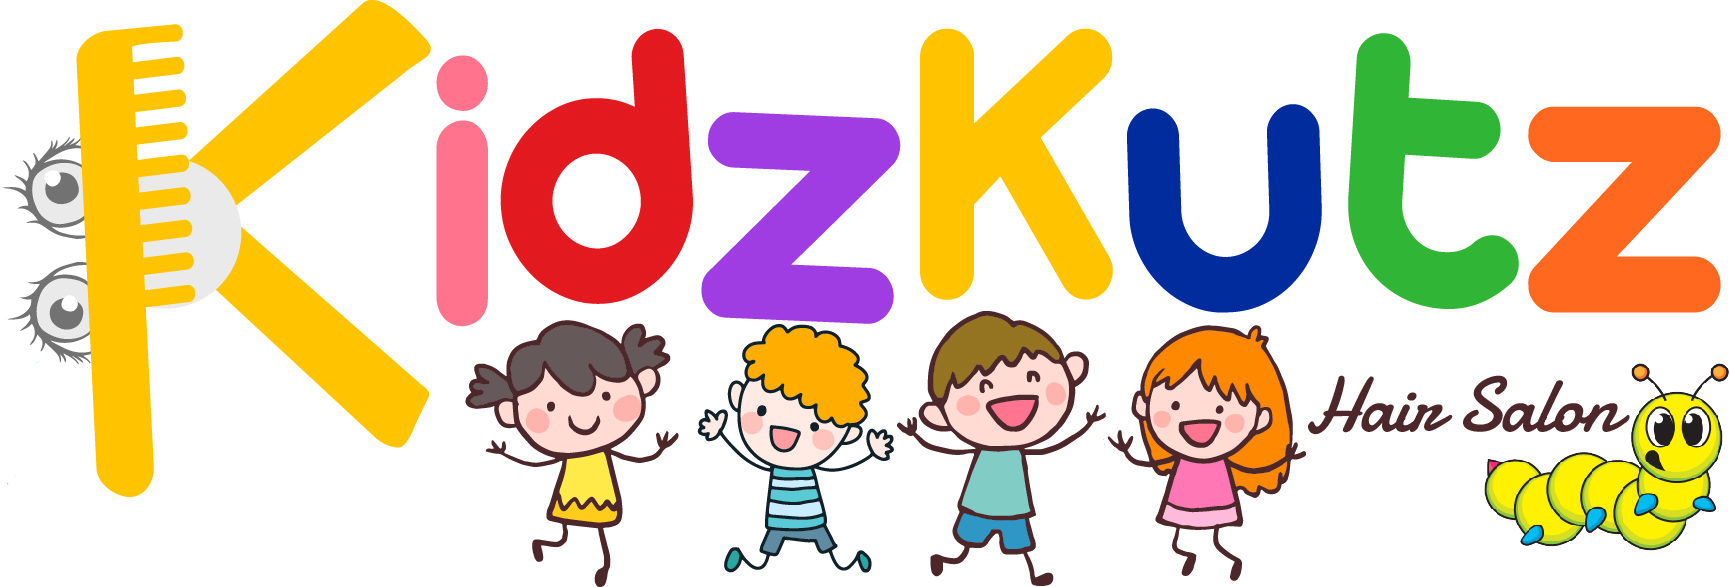 KidzKutz Kids Salon